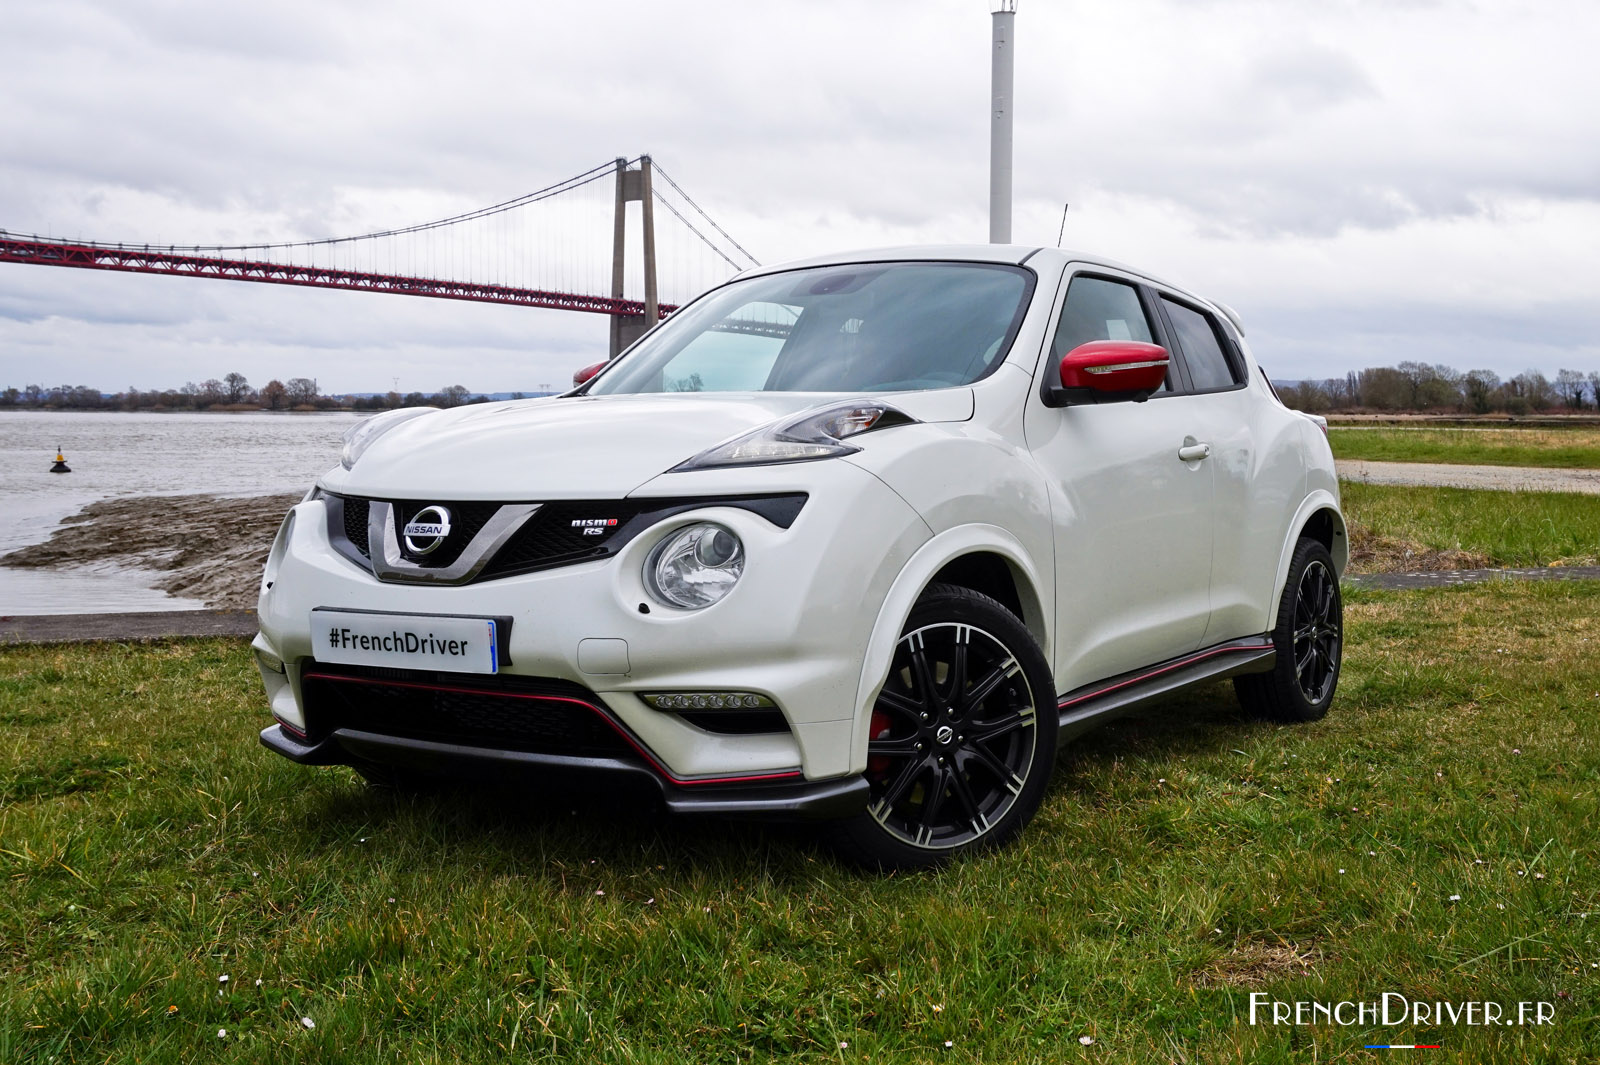 essai du nissan juke nismo rs la recherche de la sportivit french driver. Black Bedroom Furniture Sets. Home Design Ideas